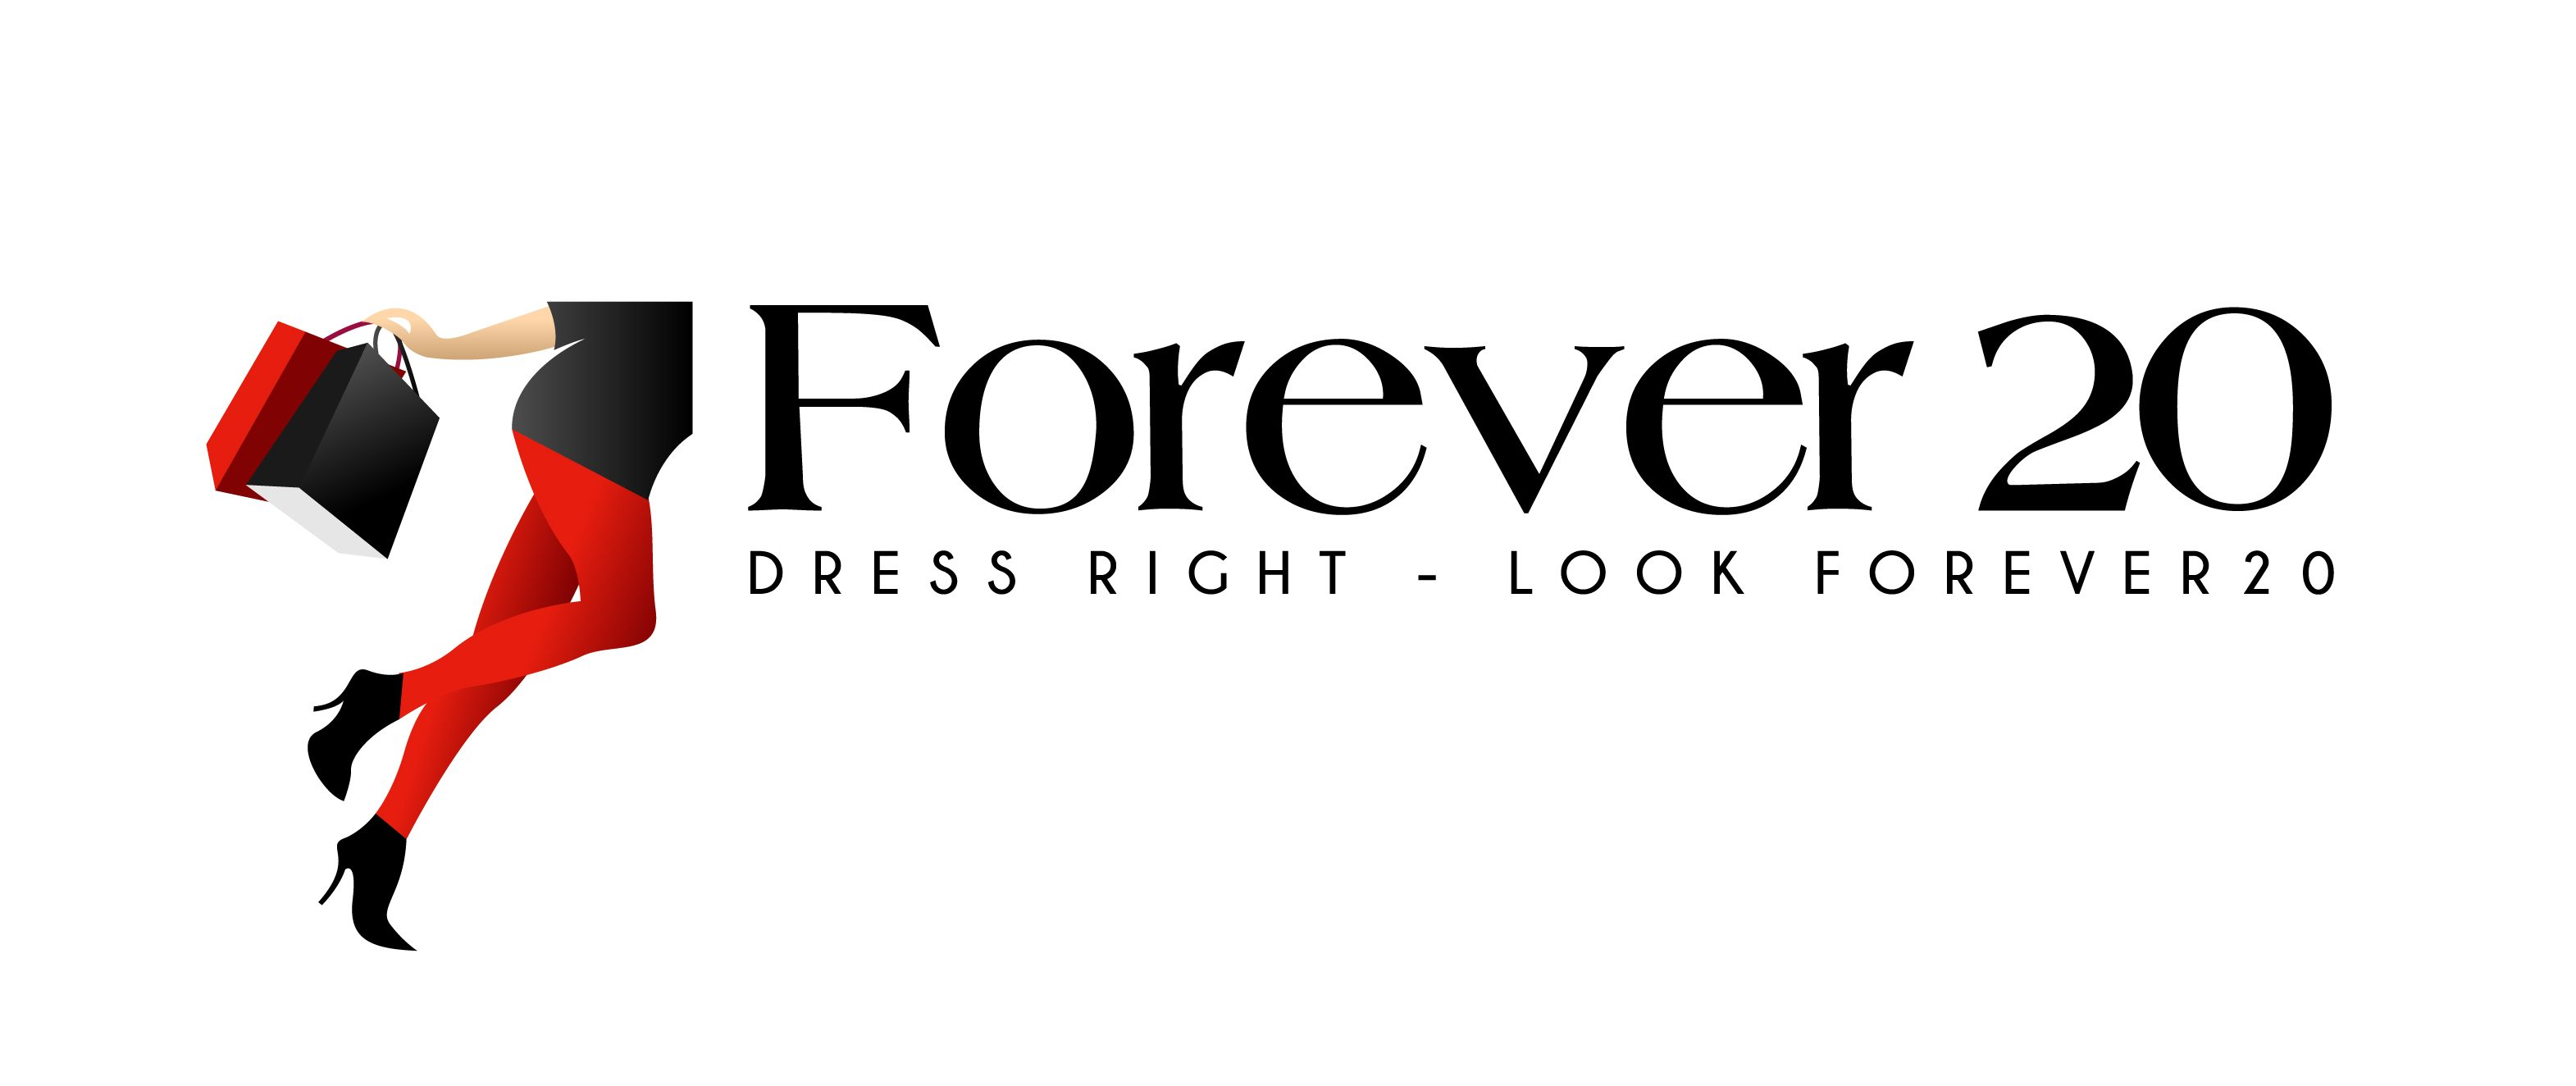 Forever 20 Uganda - Women's Fashions Boutique